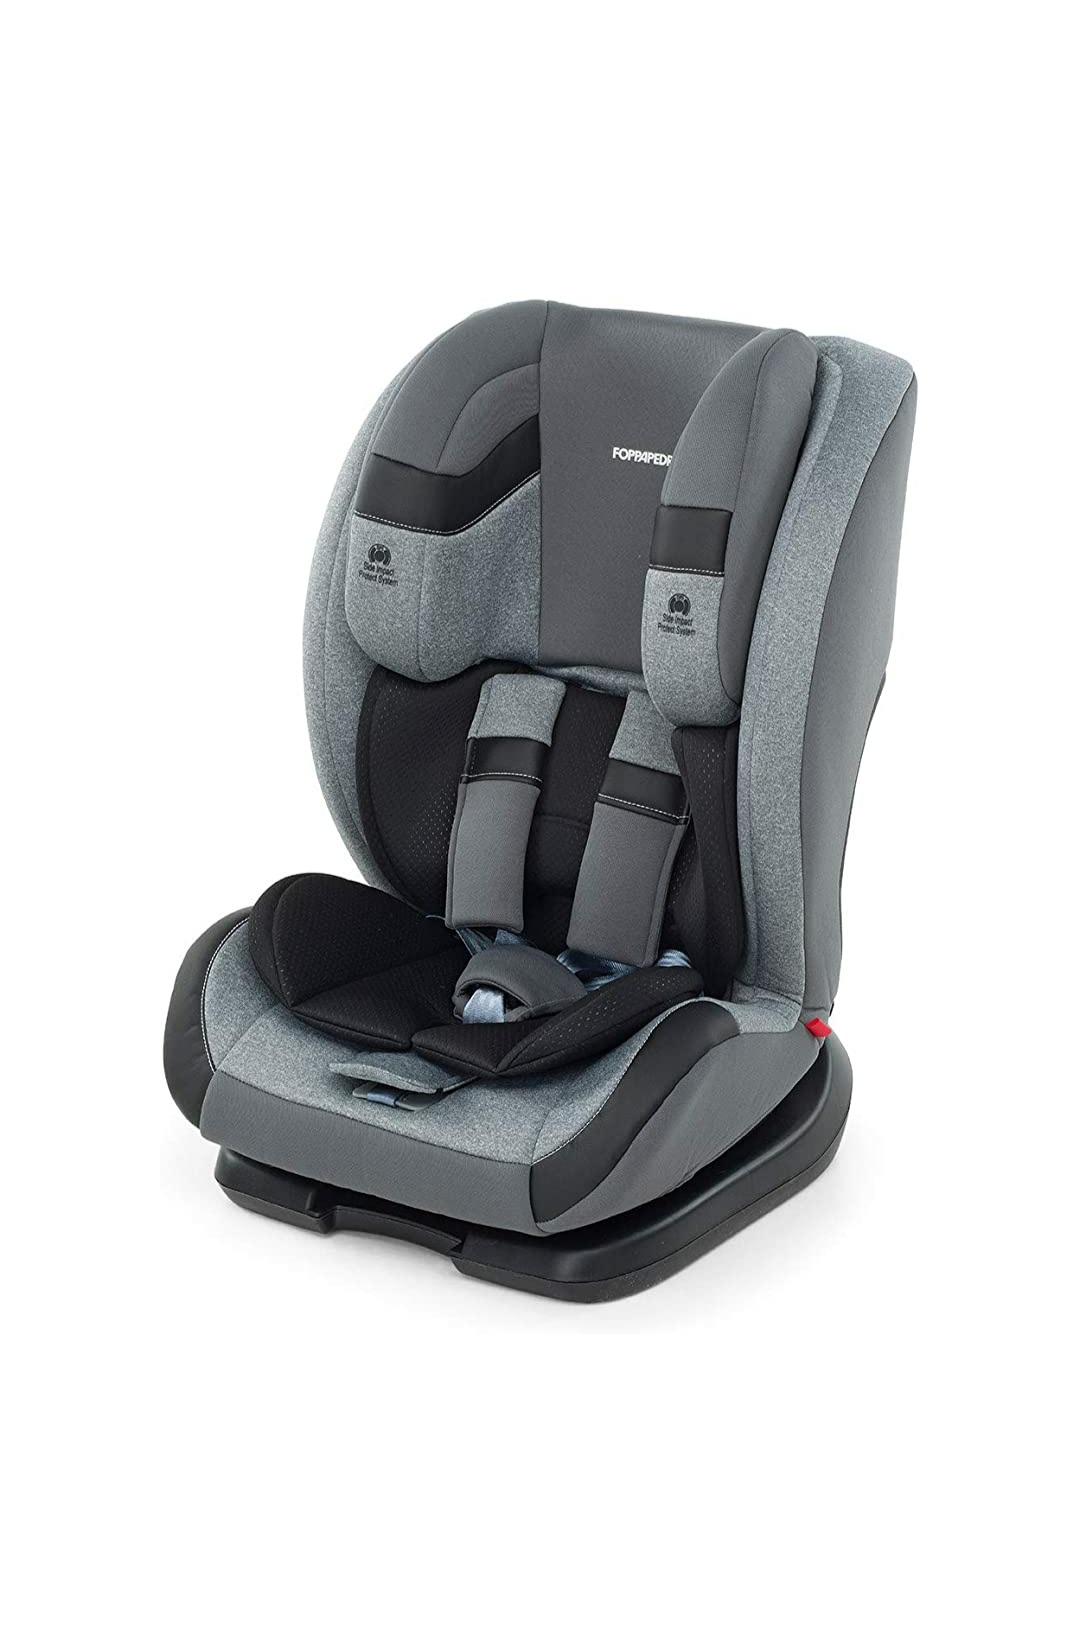 Rent car seat Palermo